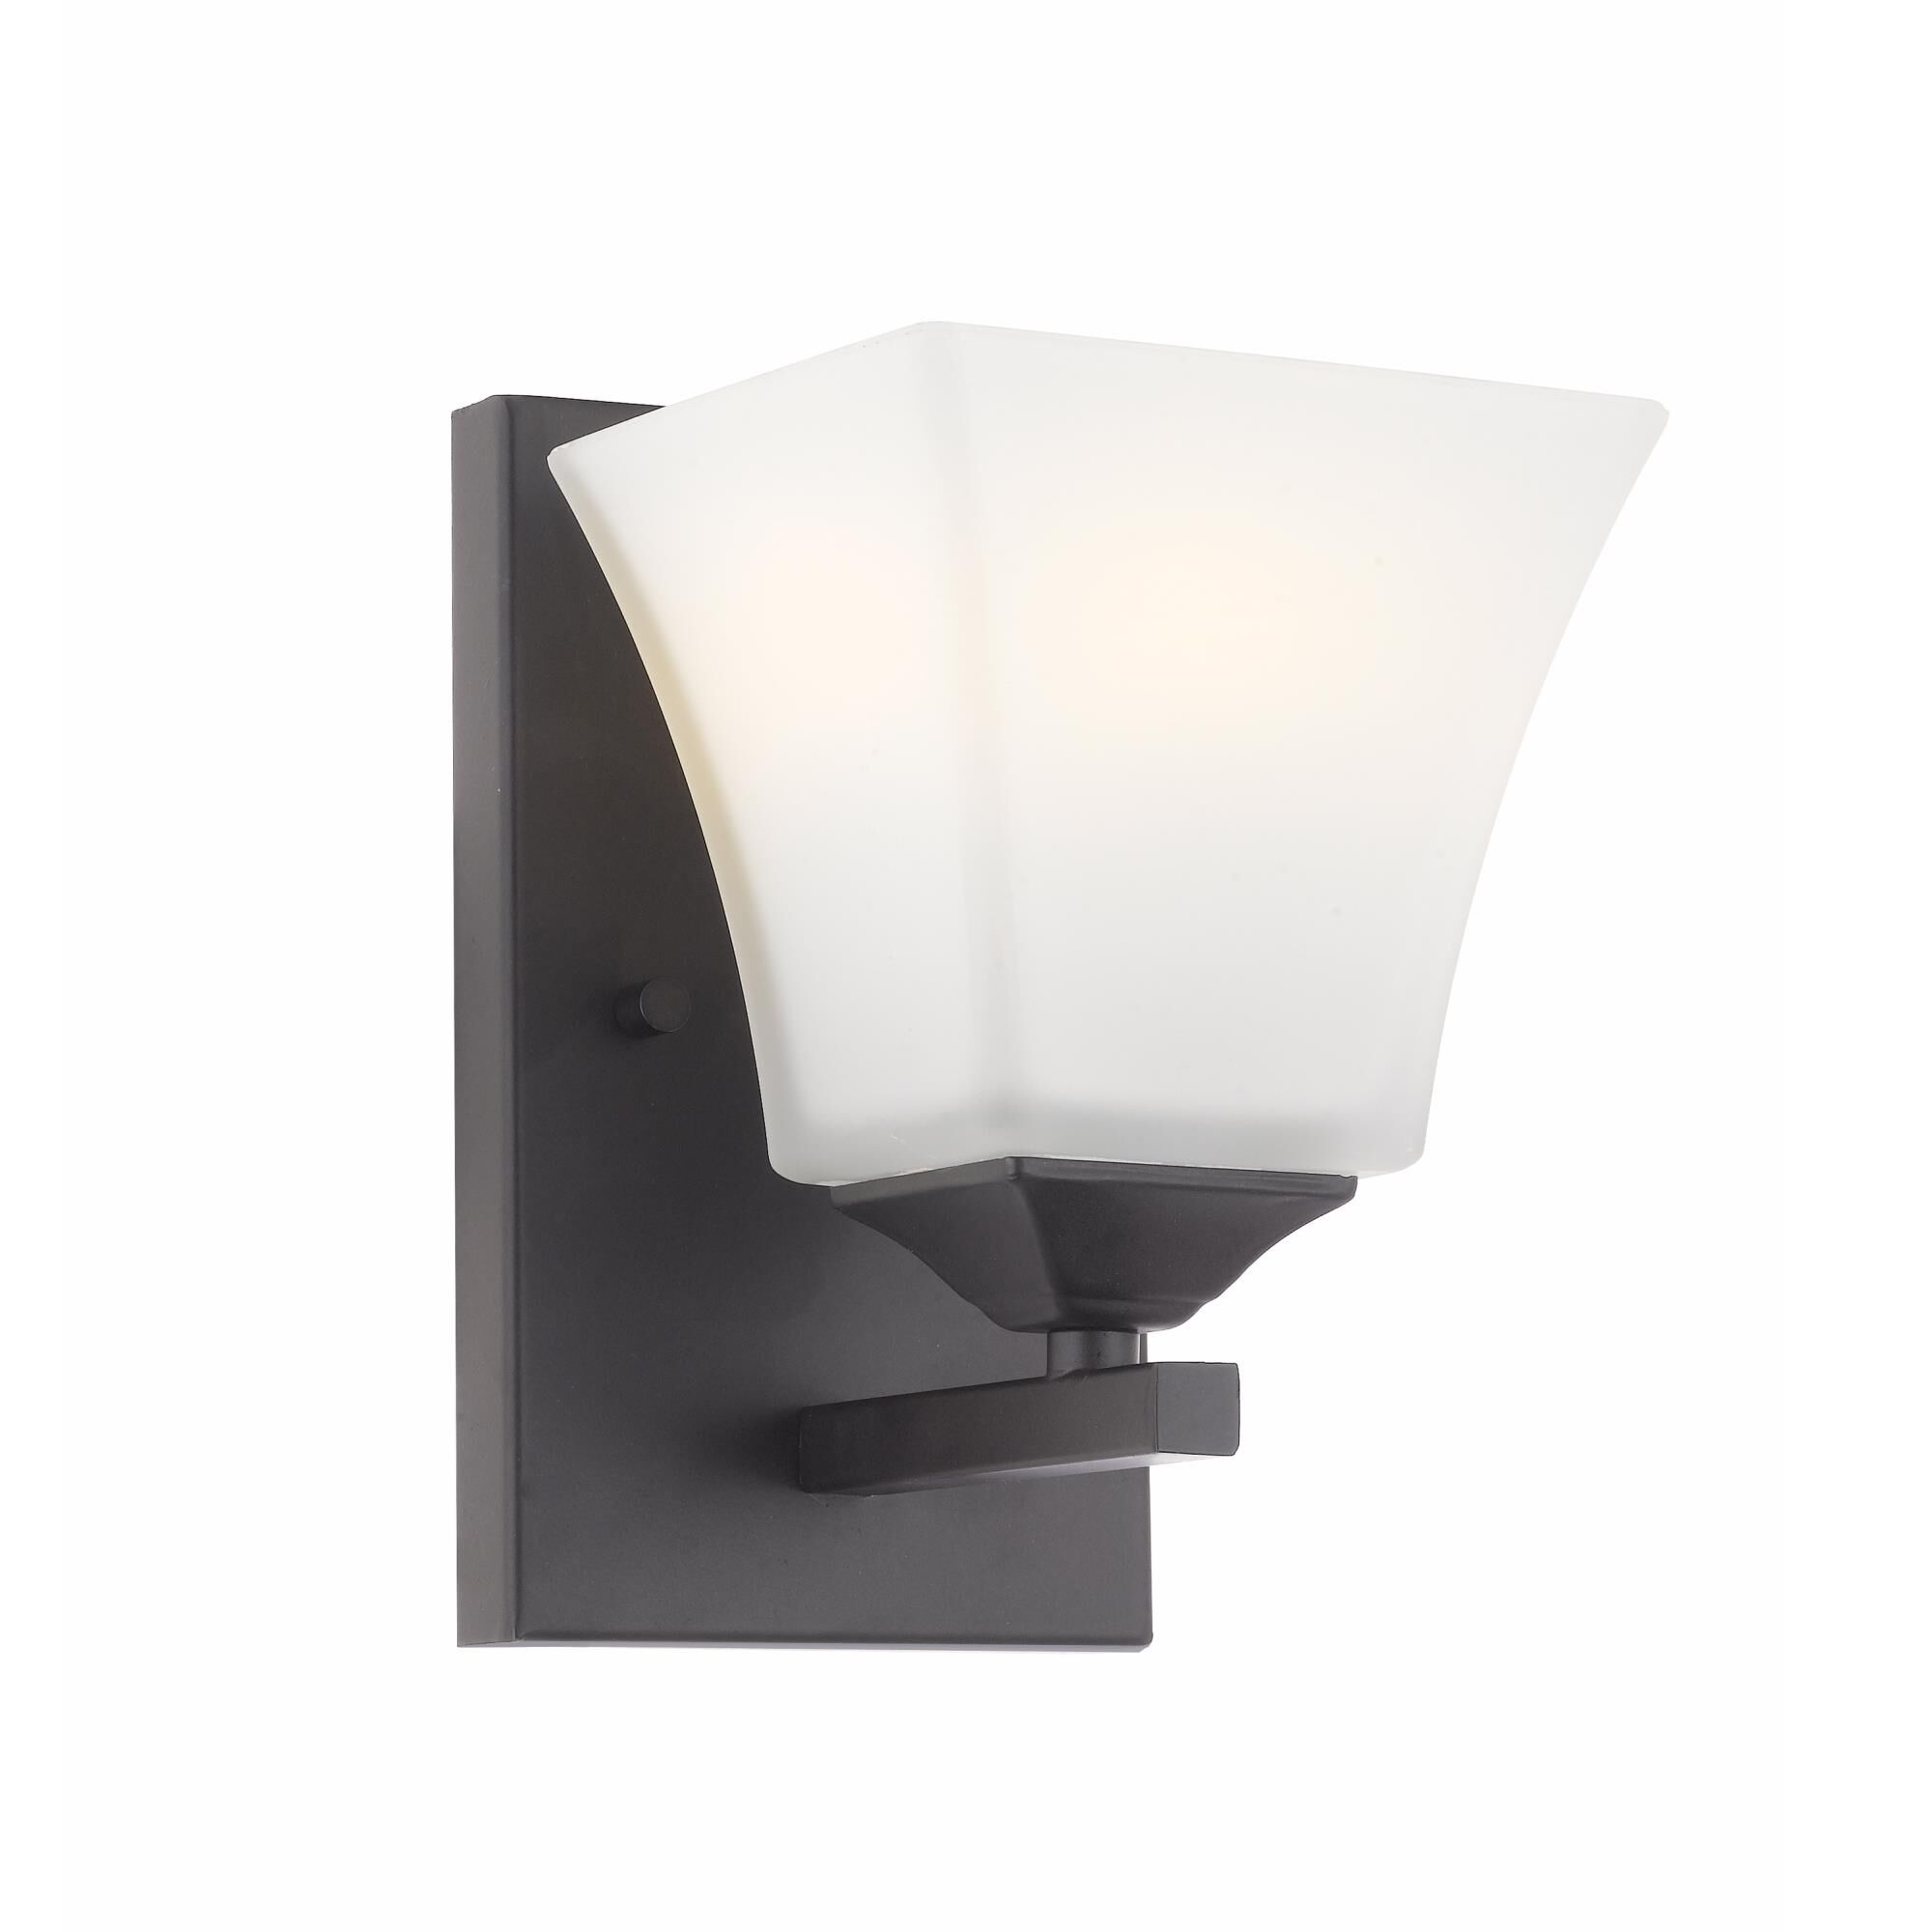 Batalion Hillair 5 Inch Wall Sconce Hillair - P1580wb1orb - Transitional Wall Sconce